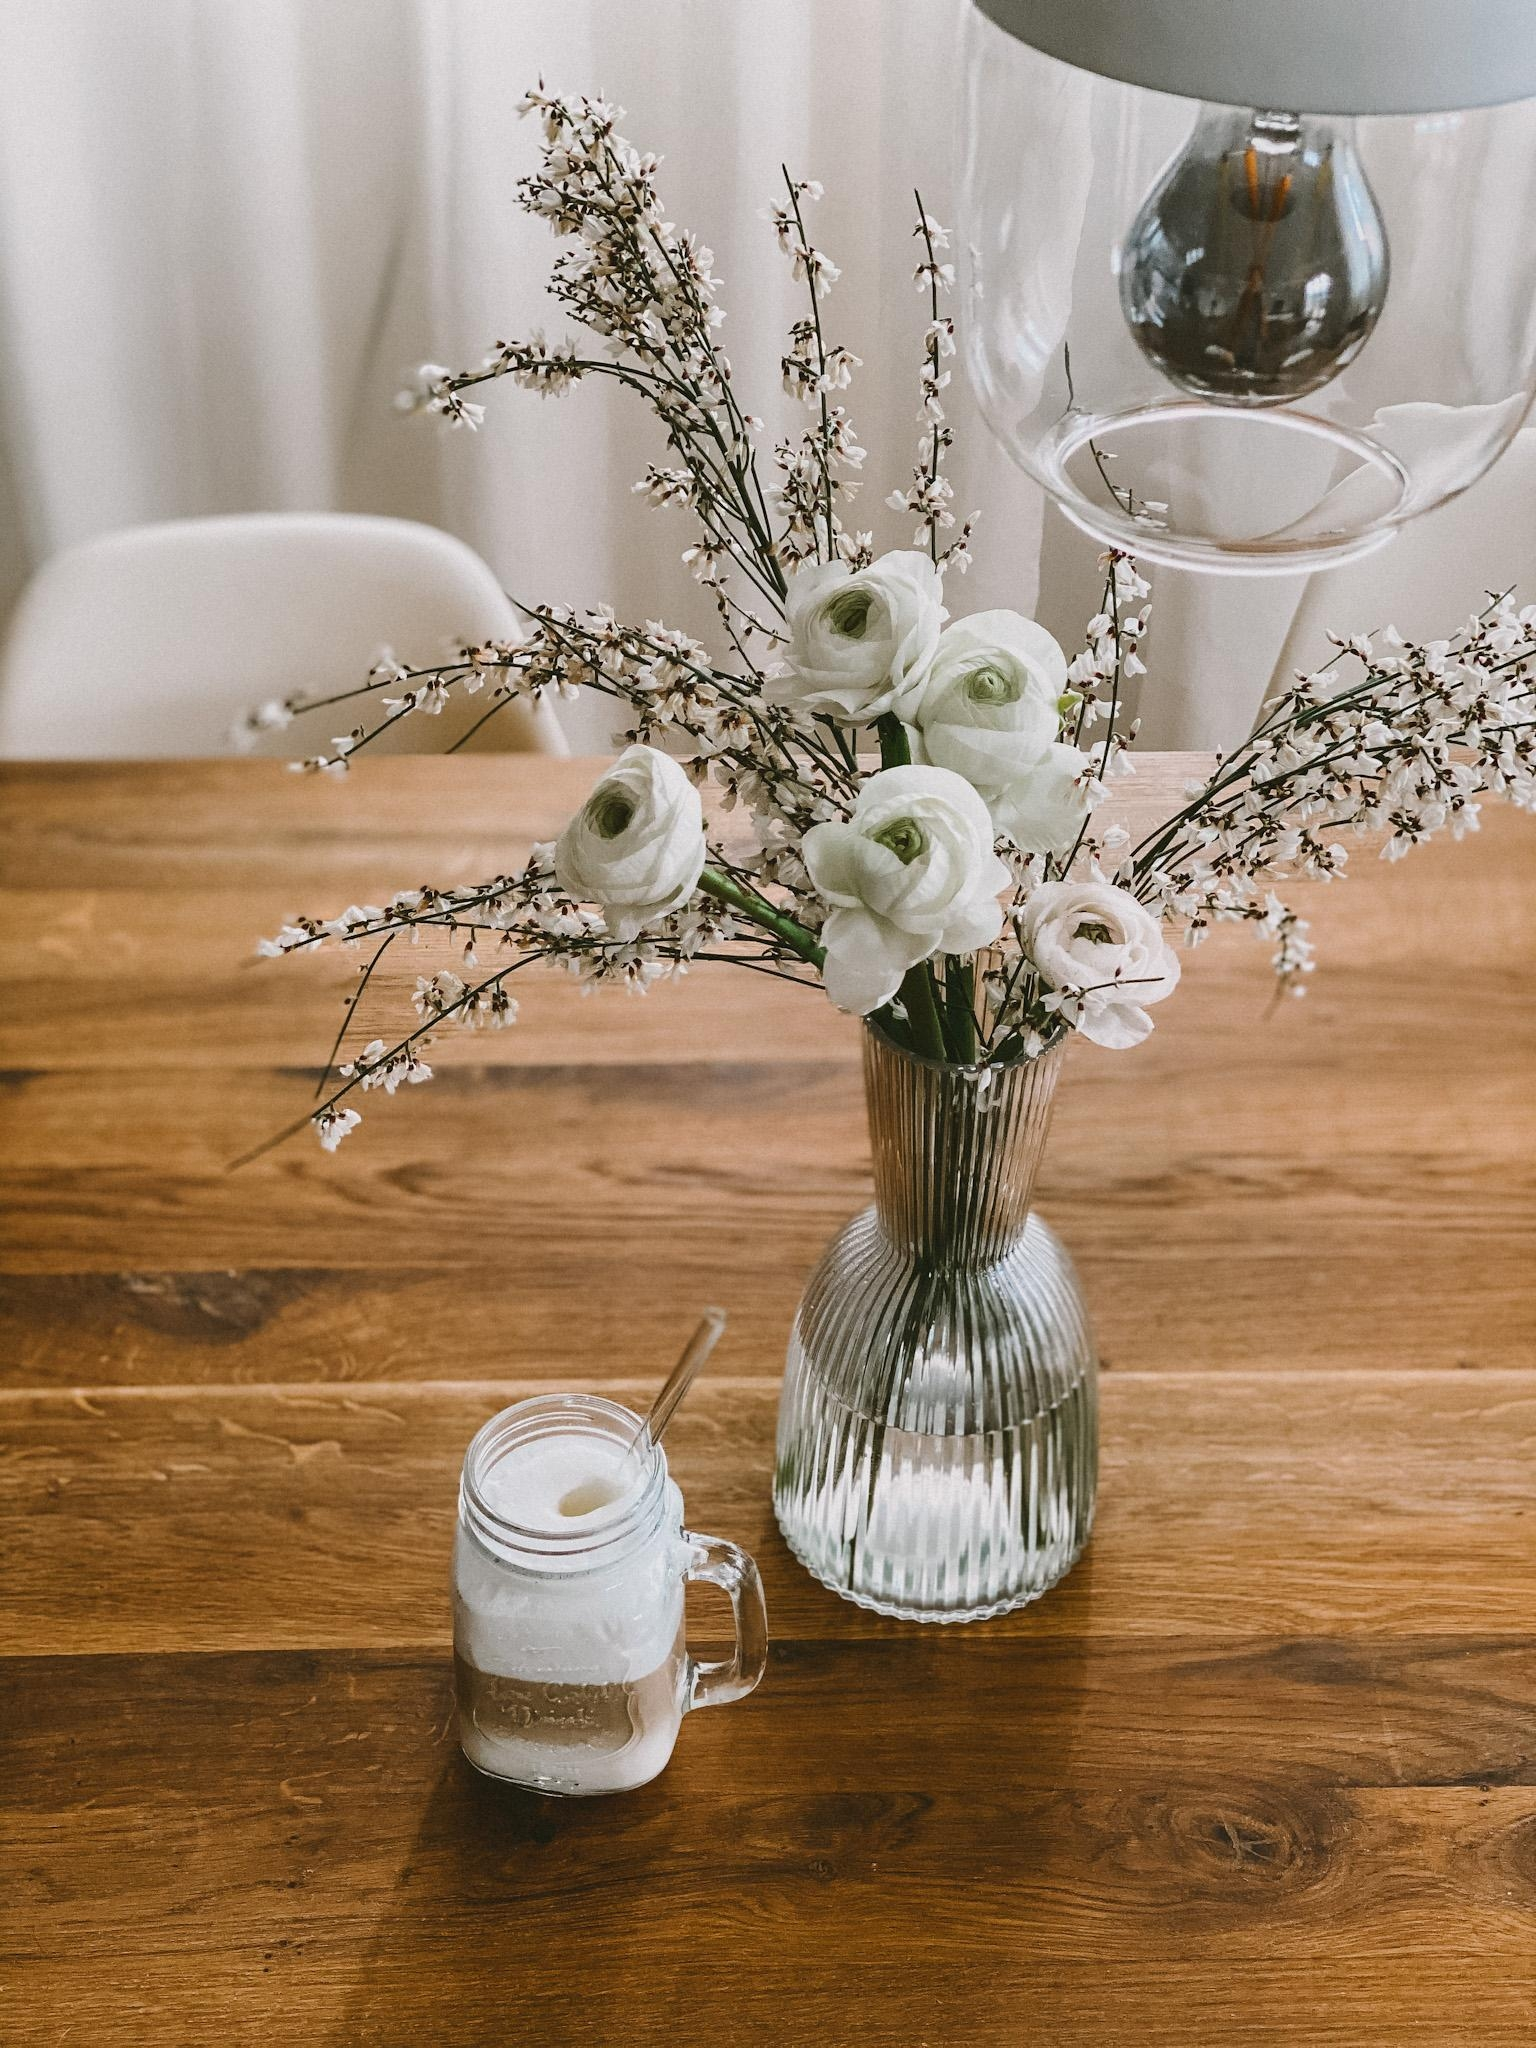 But first, coffee. ☕️